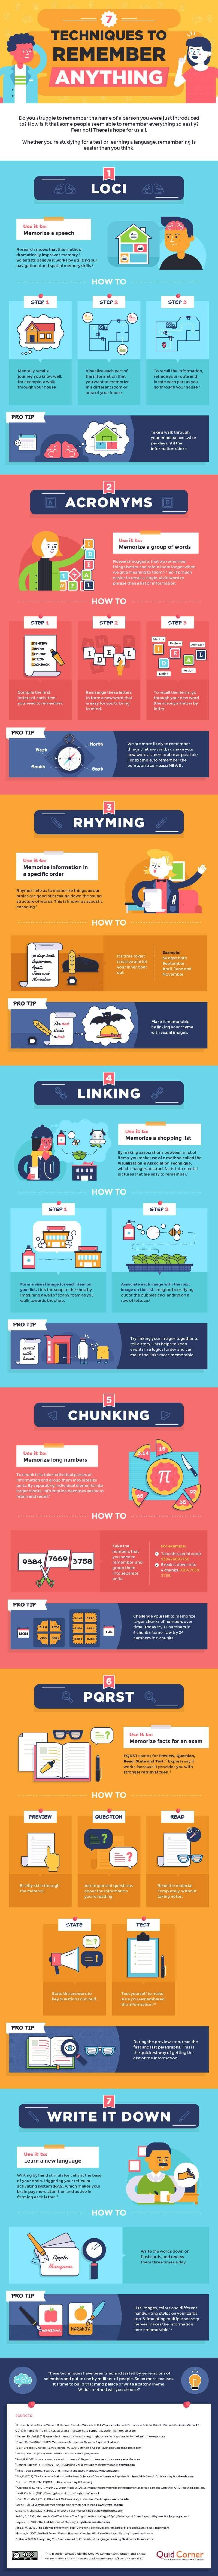 7 Ways to ensure that nothing is forgotten! #infographic